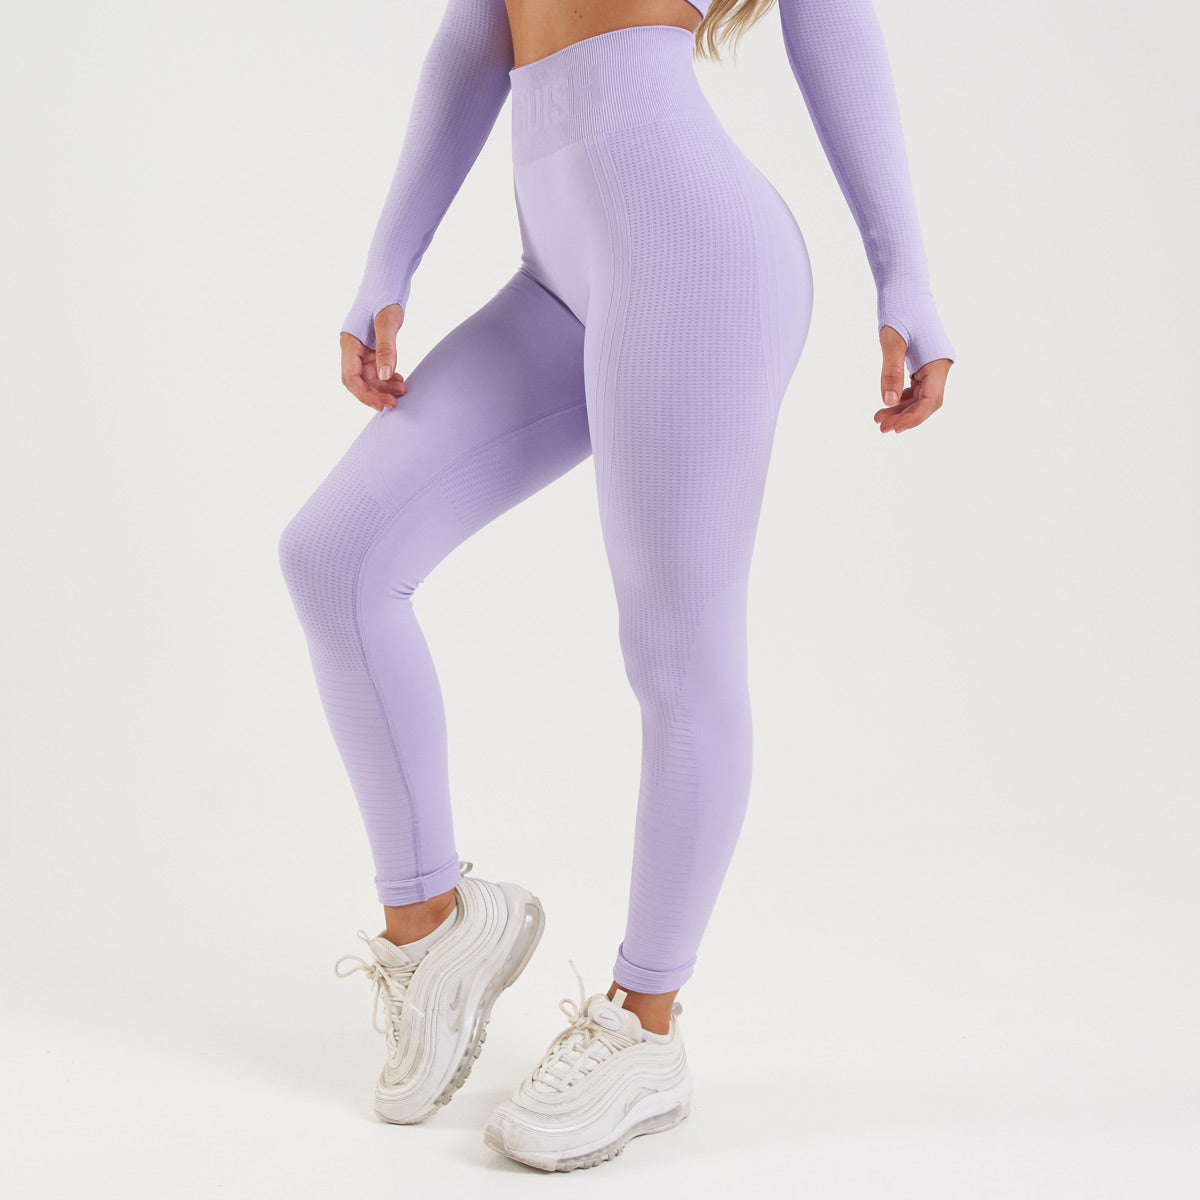 Vanquish Bright Women's Lilac Seamless Leggings